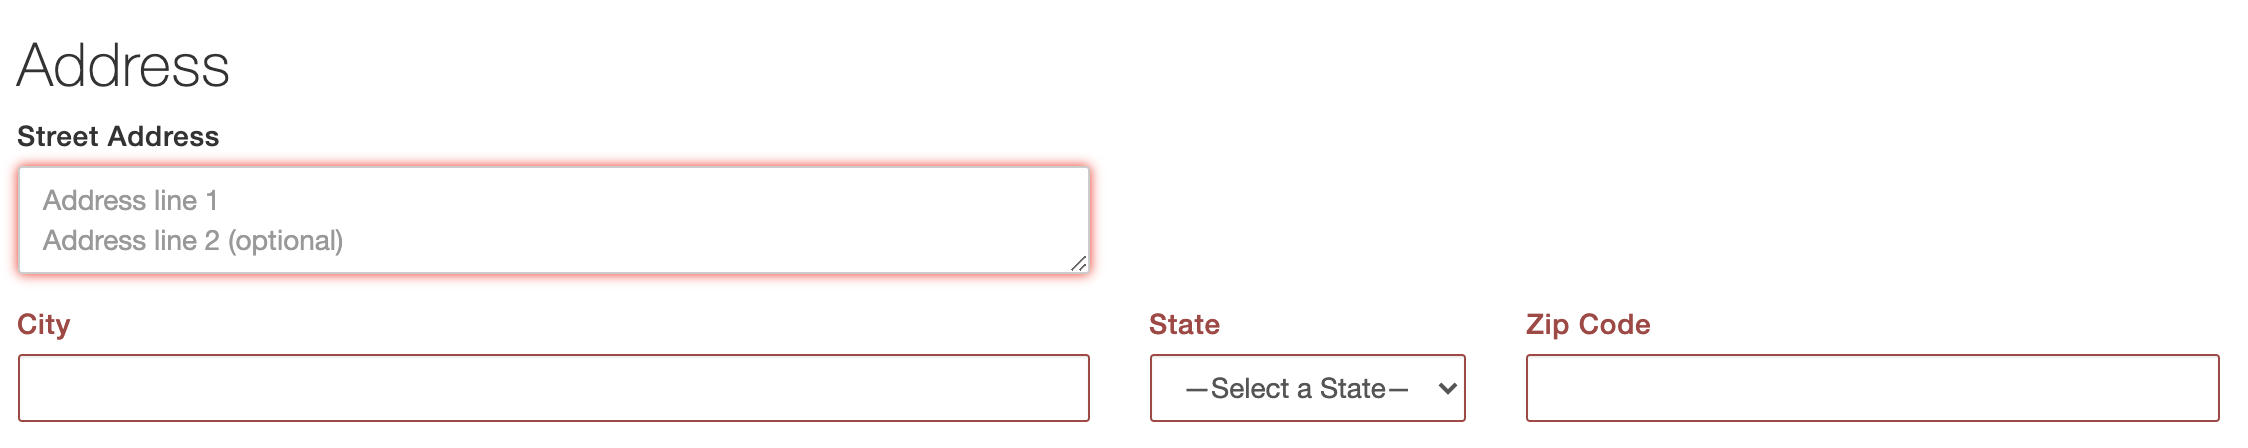 OnPatient_Forms_Required_Fields.png